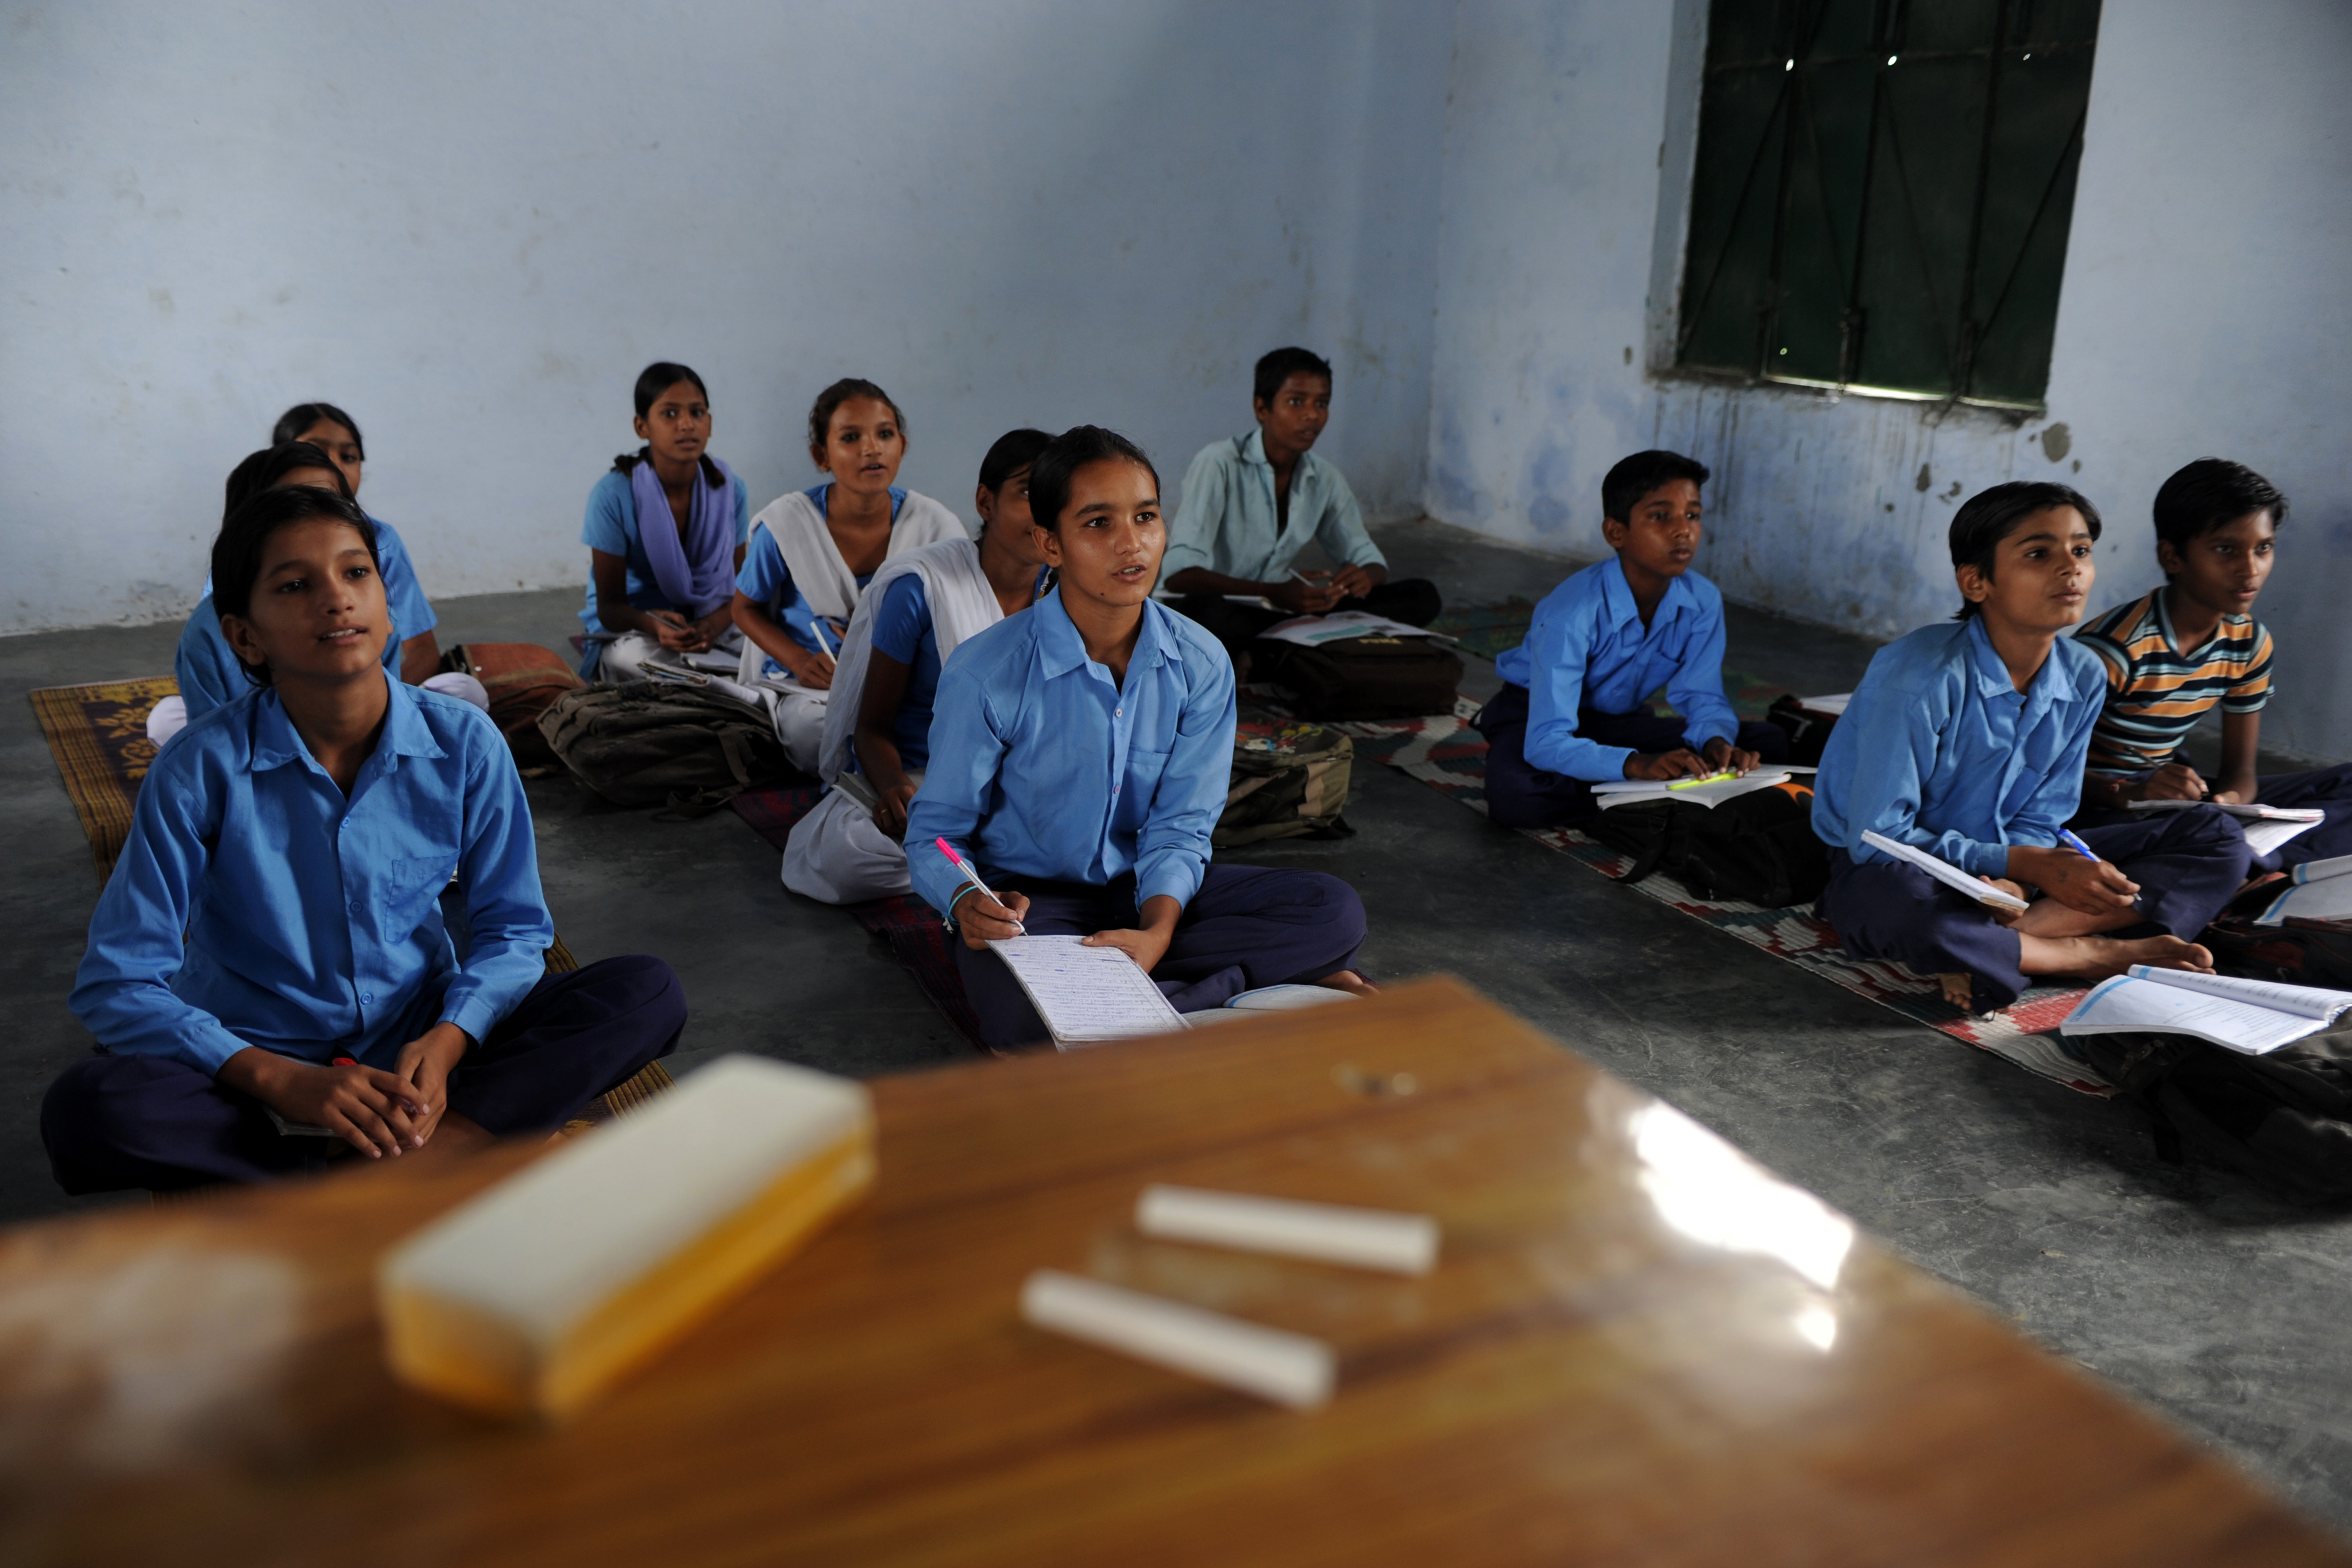 TO GO WITH Lifestyle-Asia-education-India,FEATURE by Adam Plowright Indian schoolchildren read in a classroom at a government school in Bagpath district in Uttar Pradesh on August 30, 2012. On any given day in a state primary school in India, up to one in four teachers is missing. The cost for a country that sees its young population as its ticket to superpower status is huge. In the poor and agricultural district of Baghpat in Uttar Pradesh, a state home to nearly 200 million people or one in six Indians, absences afflict pupils and fellow teachers alike. AFP PHOTO/SAJJAD HUSSAIN (Photo credit should read SAJJAD HUSSAIN/AFP/GettyImages)